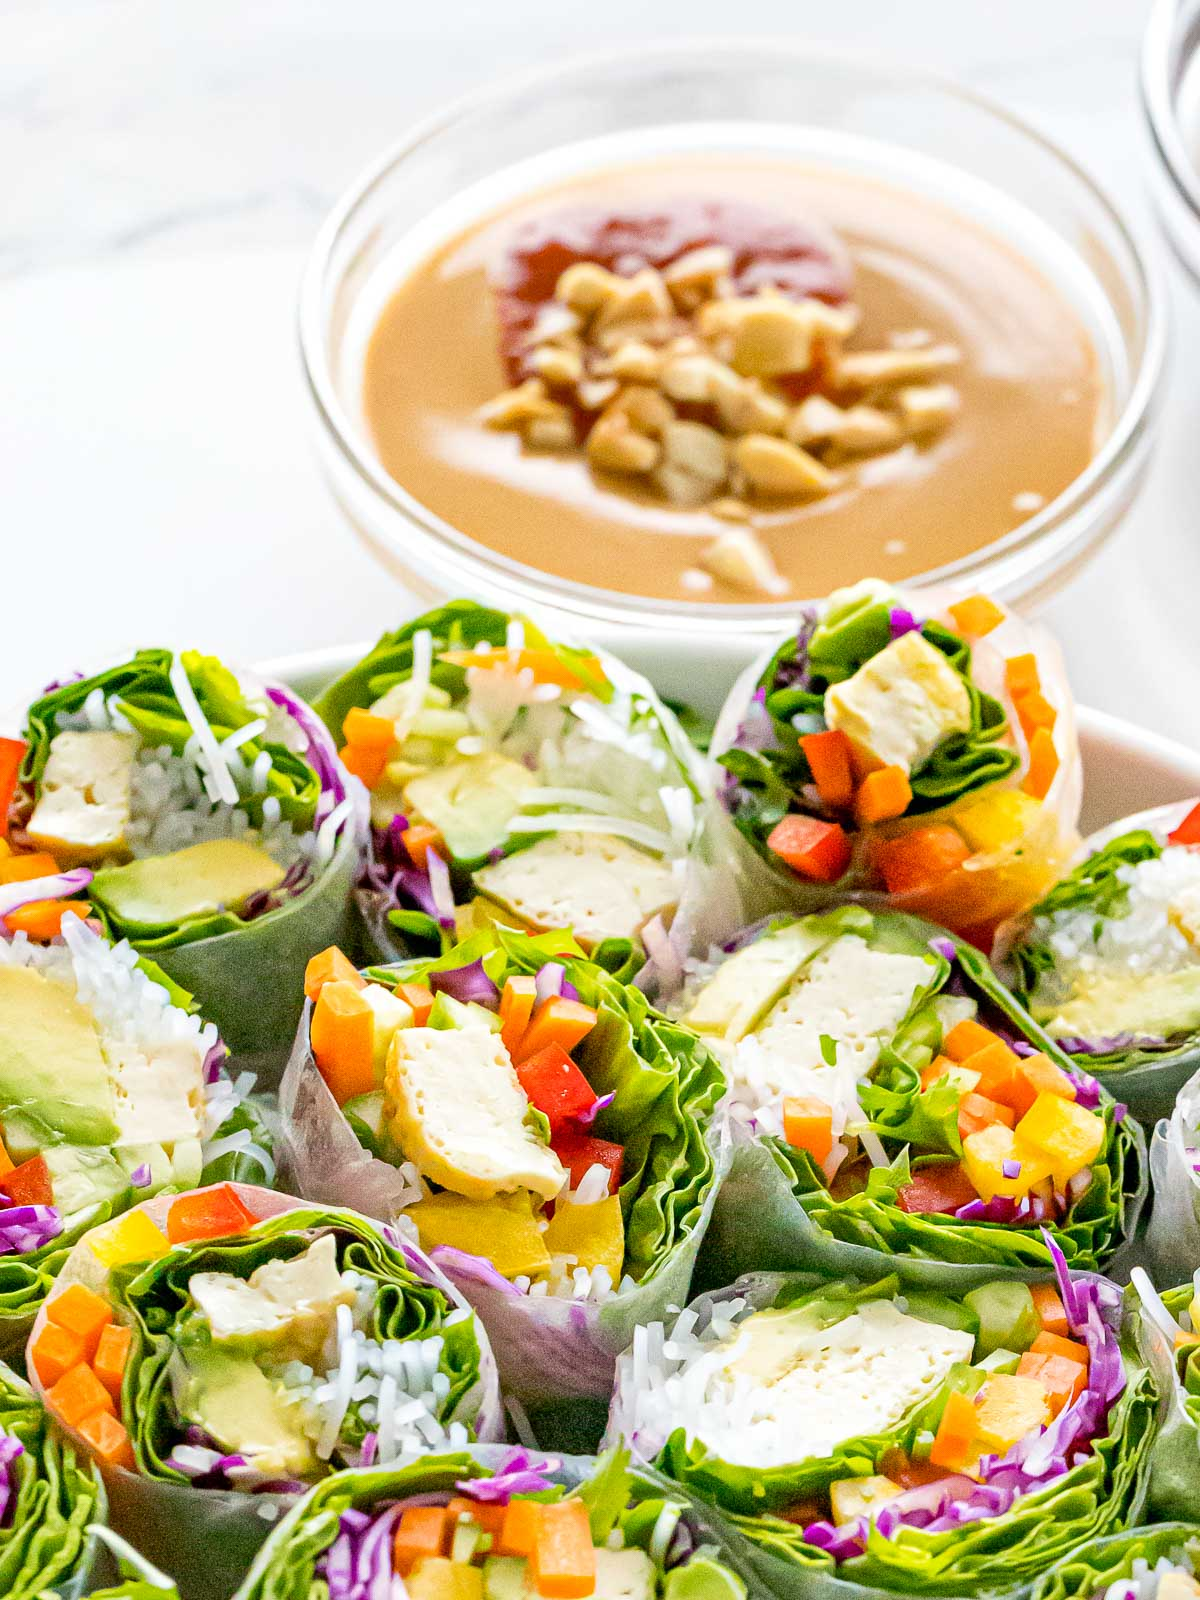 Vietnamese peanut dipping sauce next to a plate of fresh spring rolls